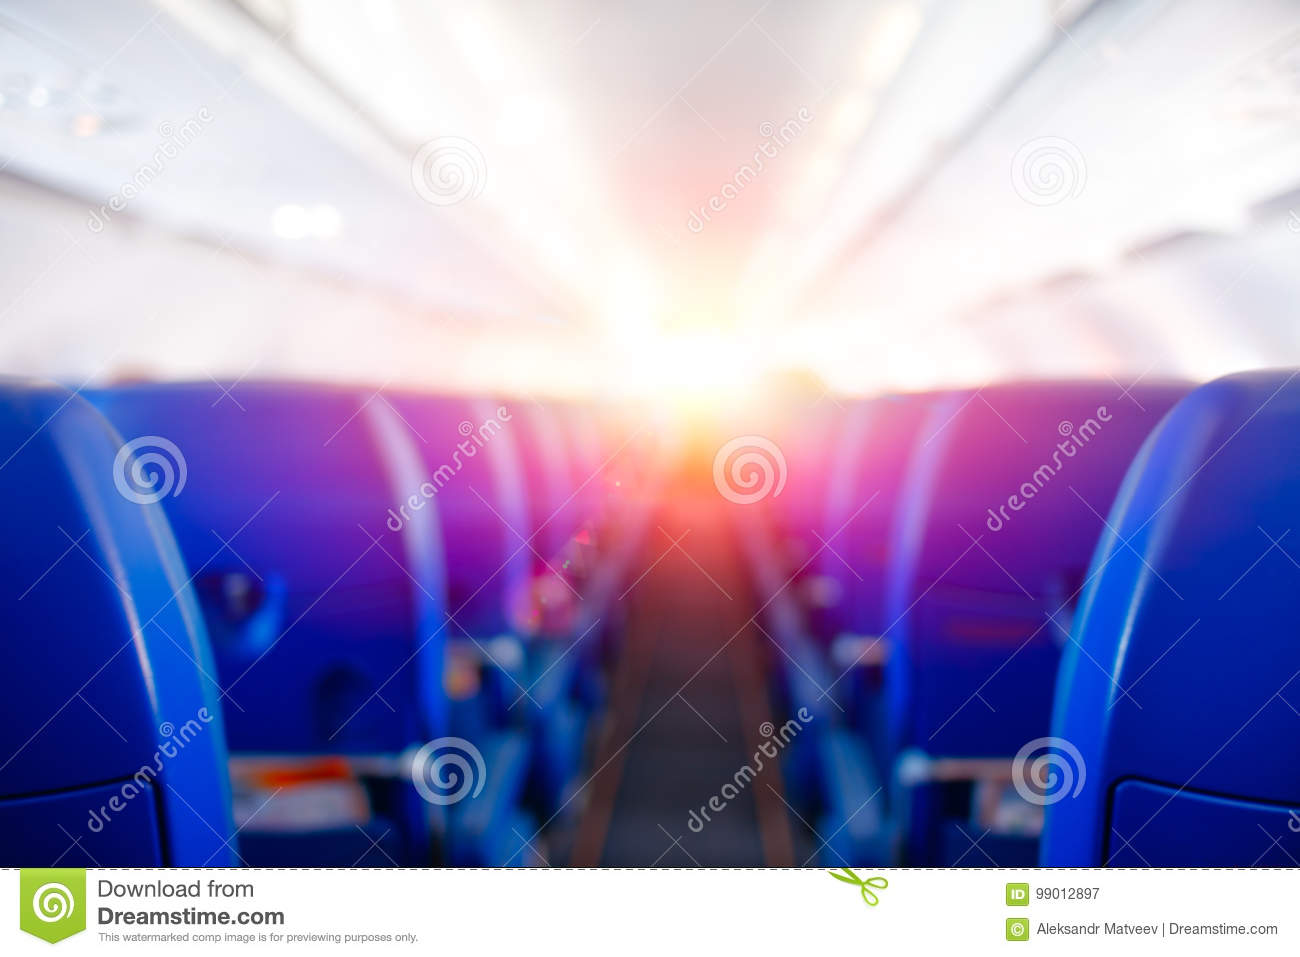 Passenger seat, Interior of airplane, plane flies to meet sun, bright sunlight illuminates the aircraft cabin, travel concept